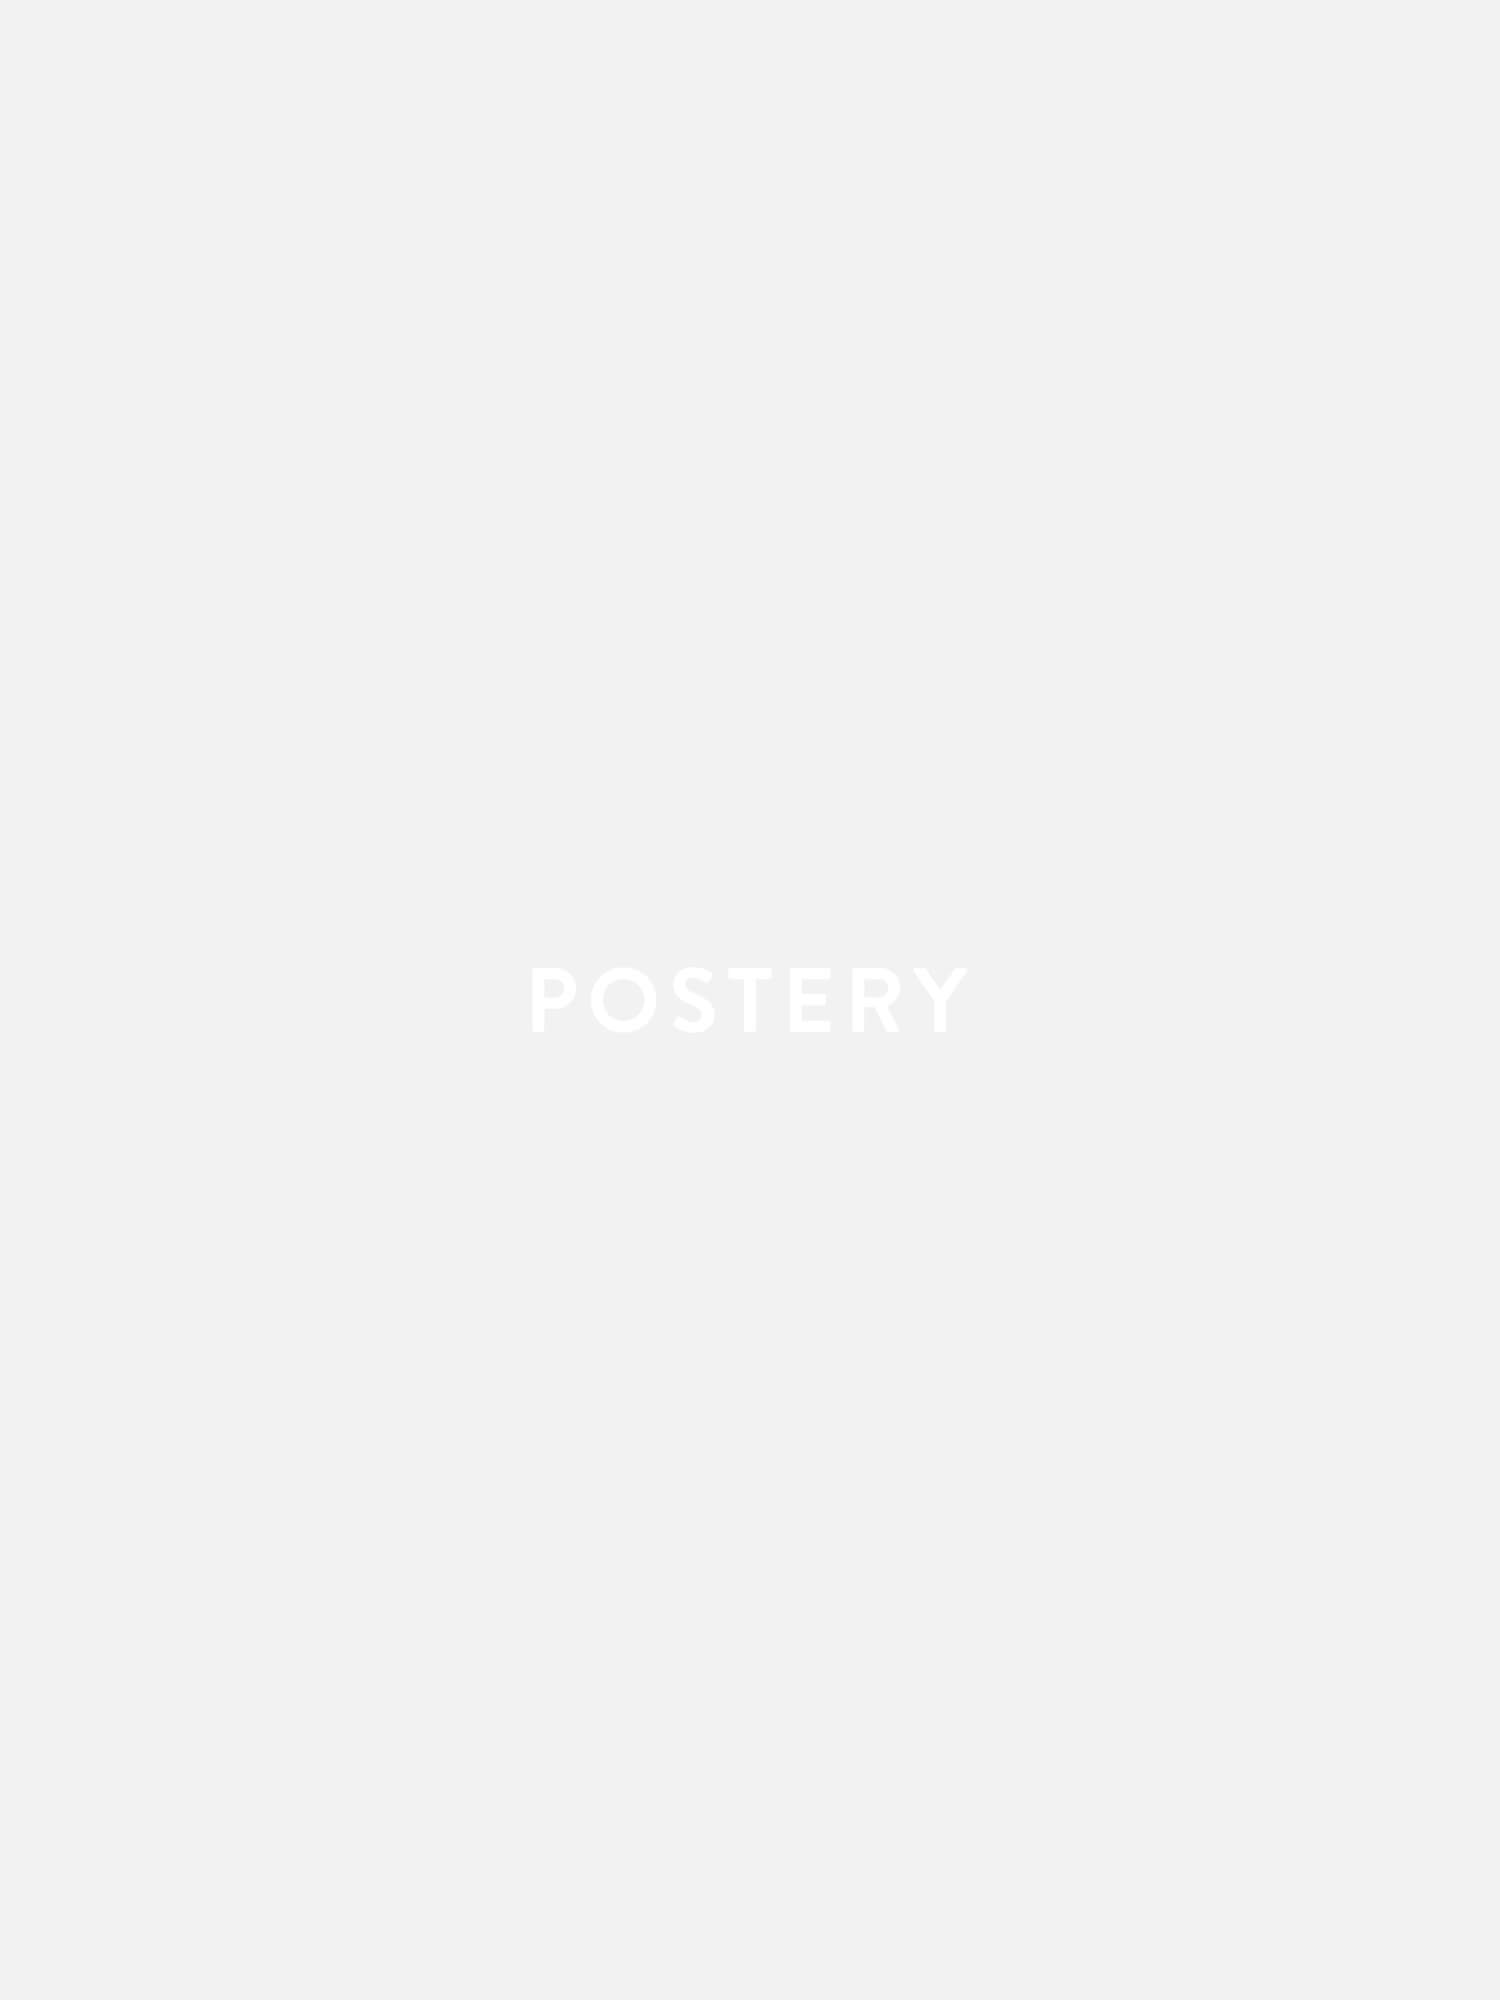 Eggs in a Box Poster